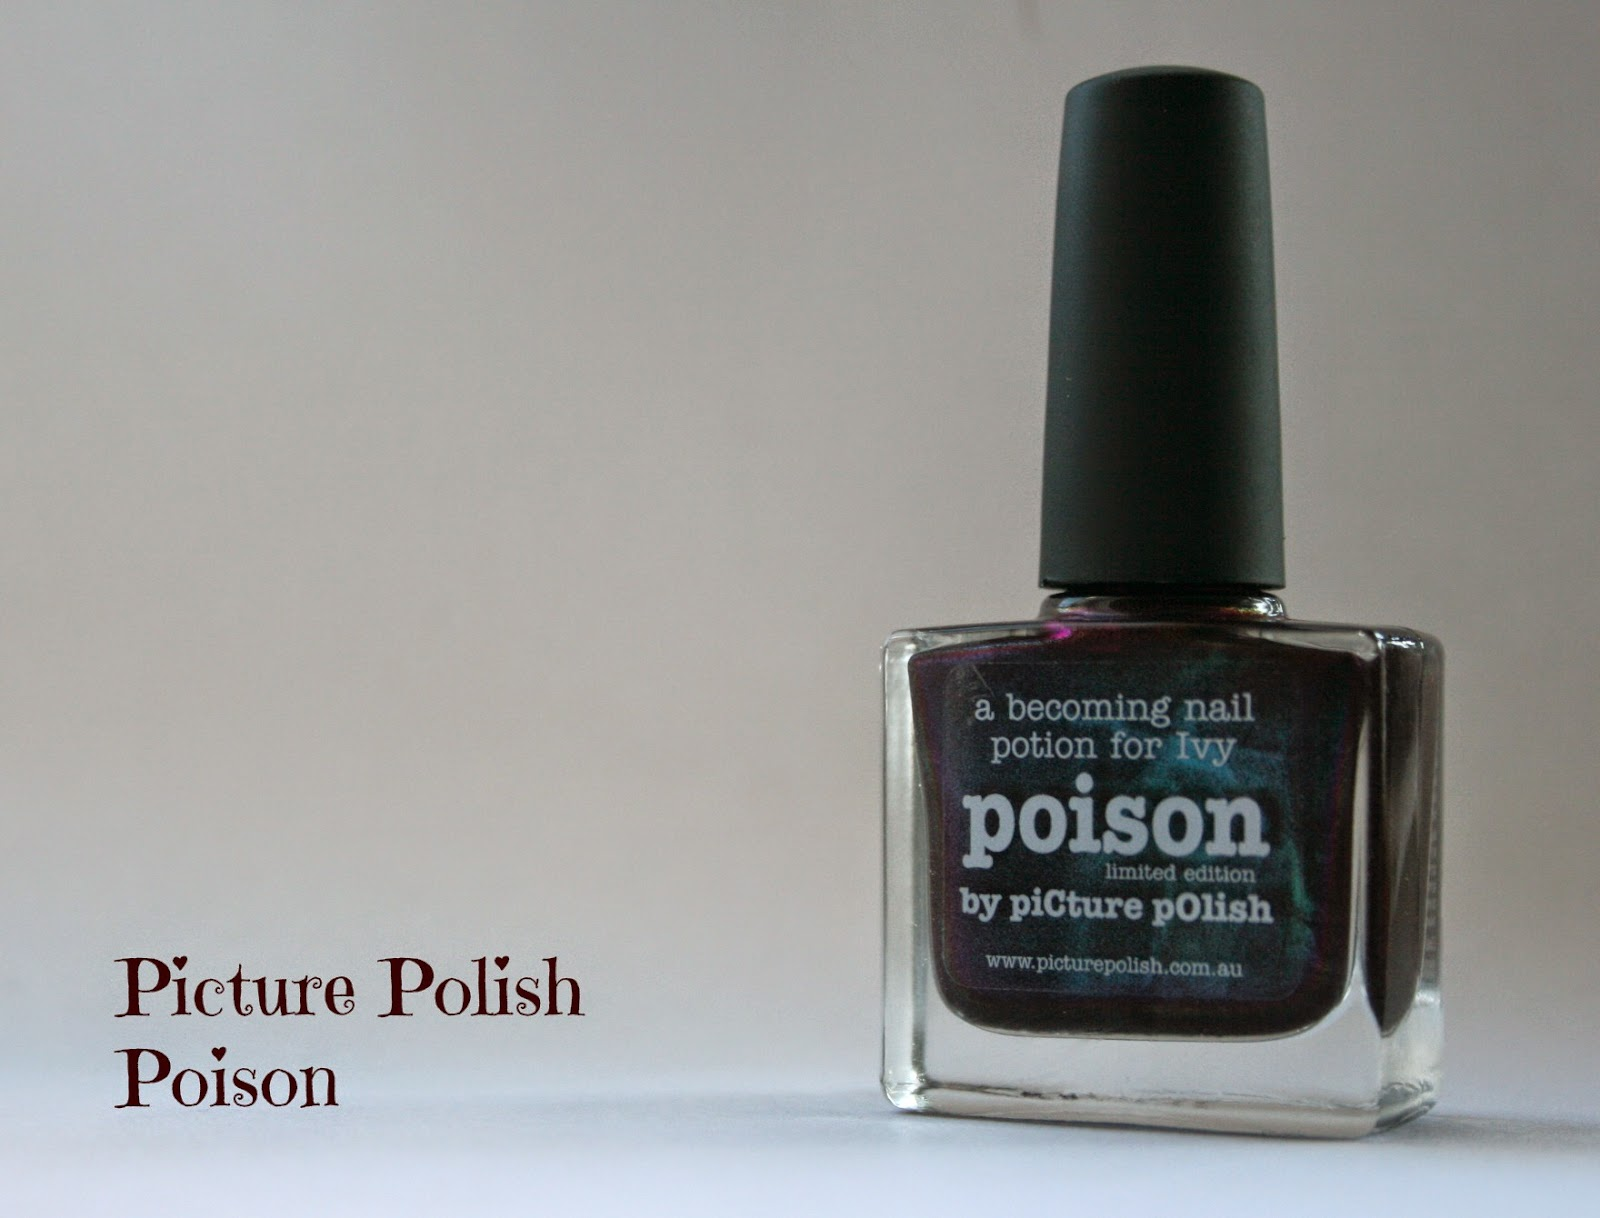 Picture Polish Poison